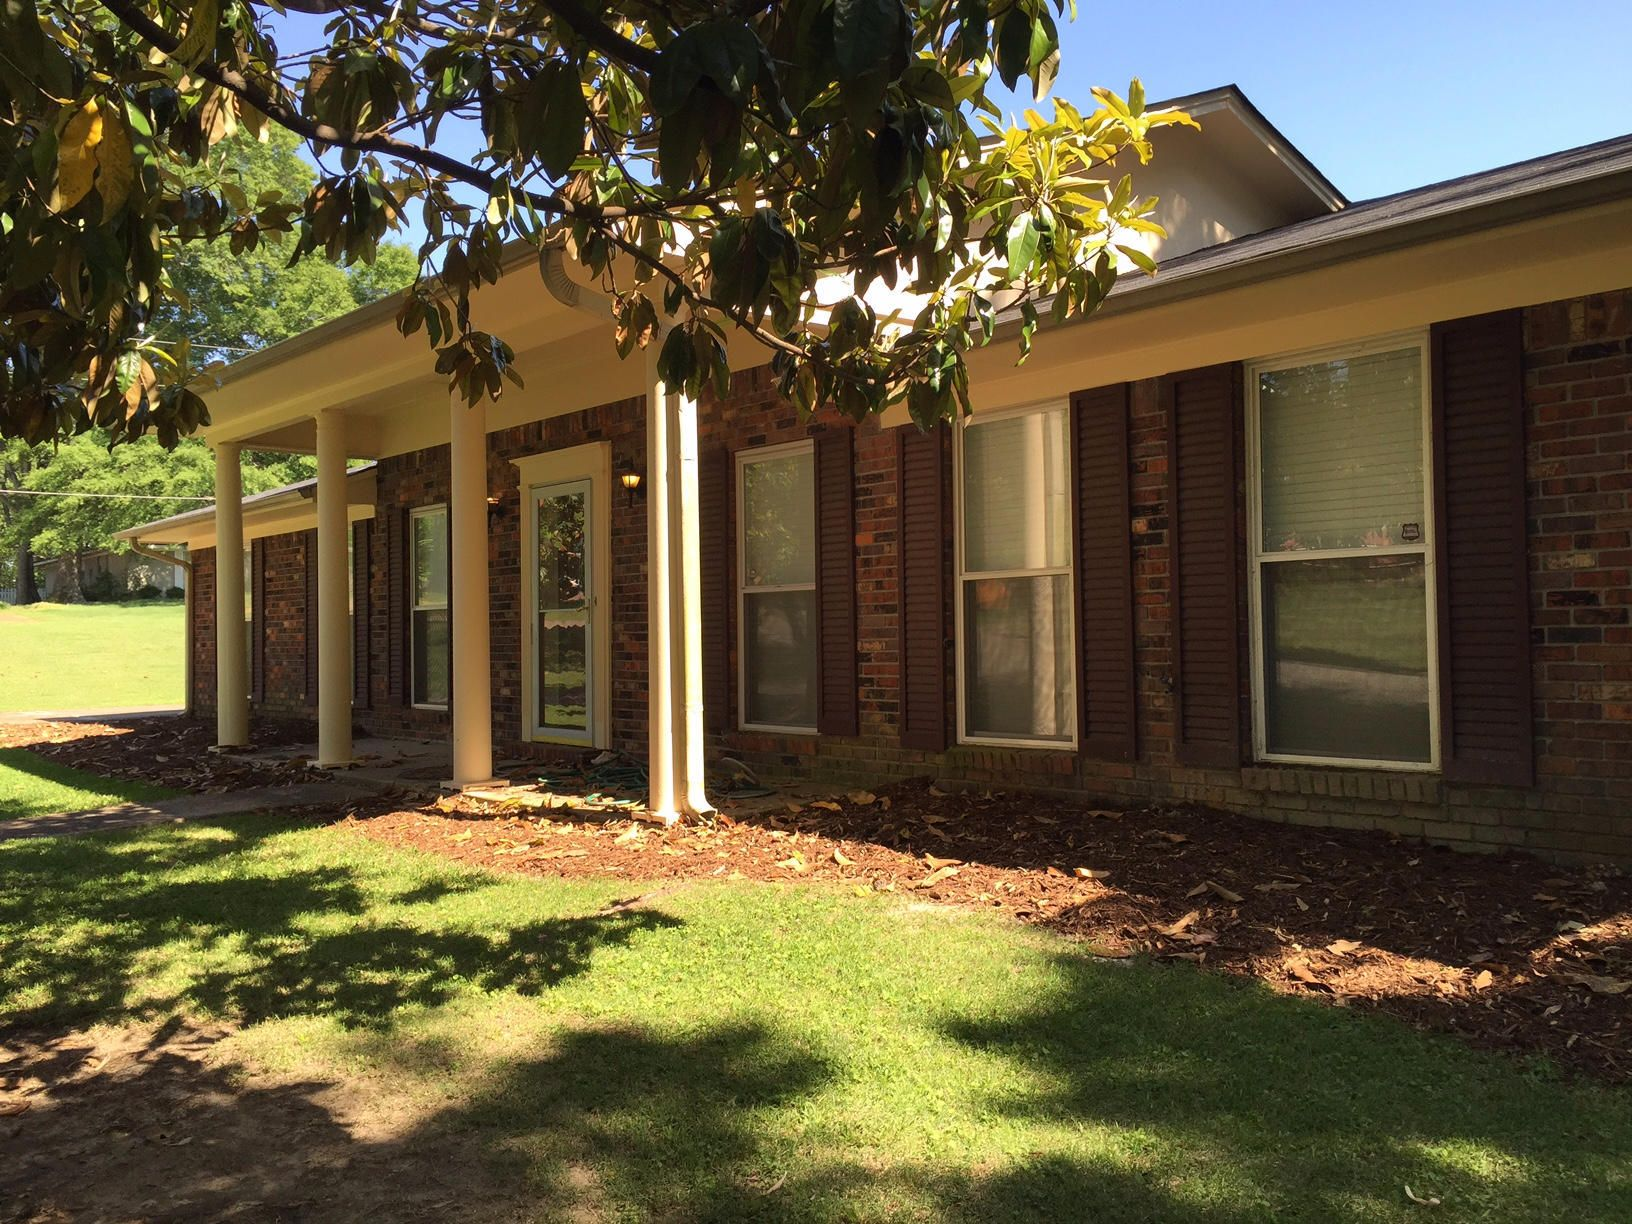 1001 Monroe St Tupelo Ms Agent Owned Property A